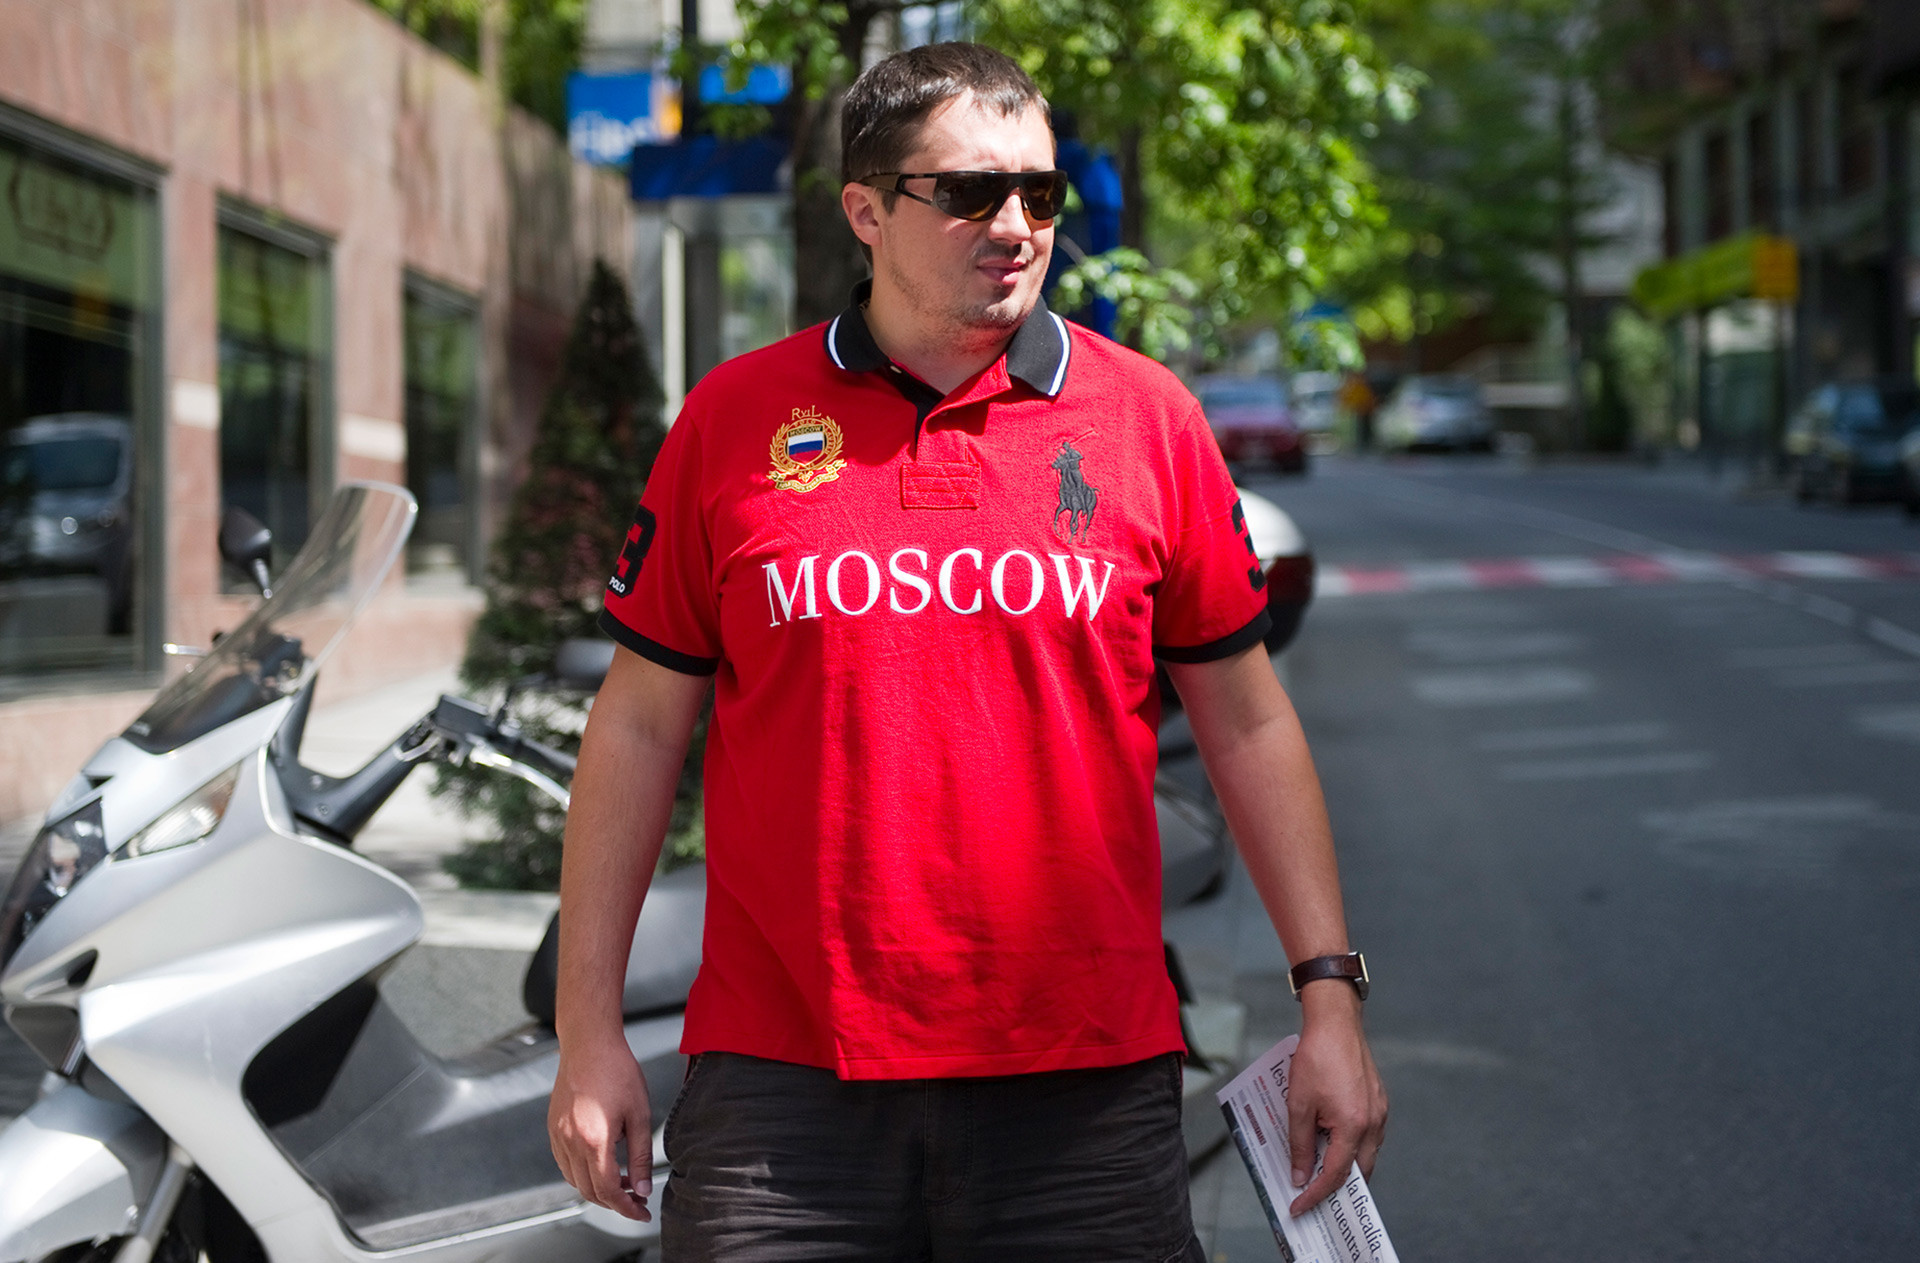 Alexander Shprygin, president of the Russian National Football Fans Association